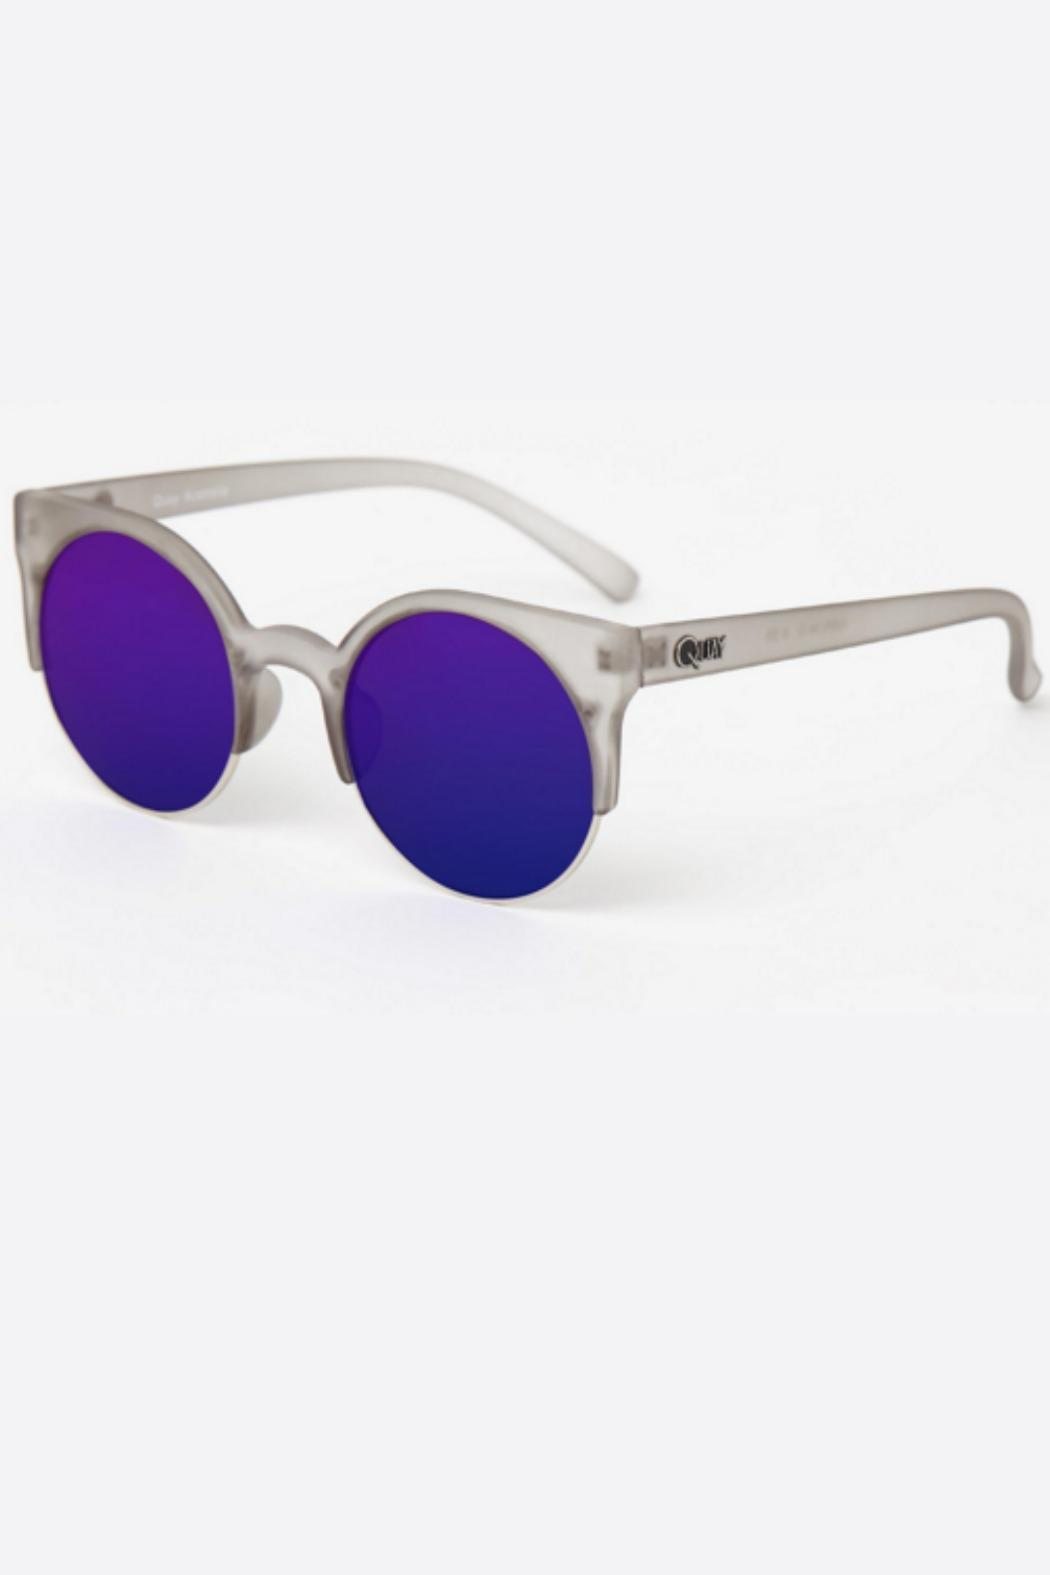 1c02f9da9b Quay Australia Harlem Purple Grey Sunglasses from Las Vegas by R+D ...